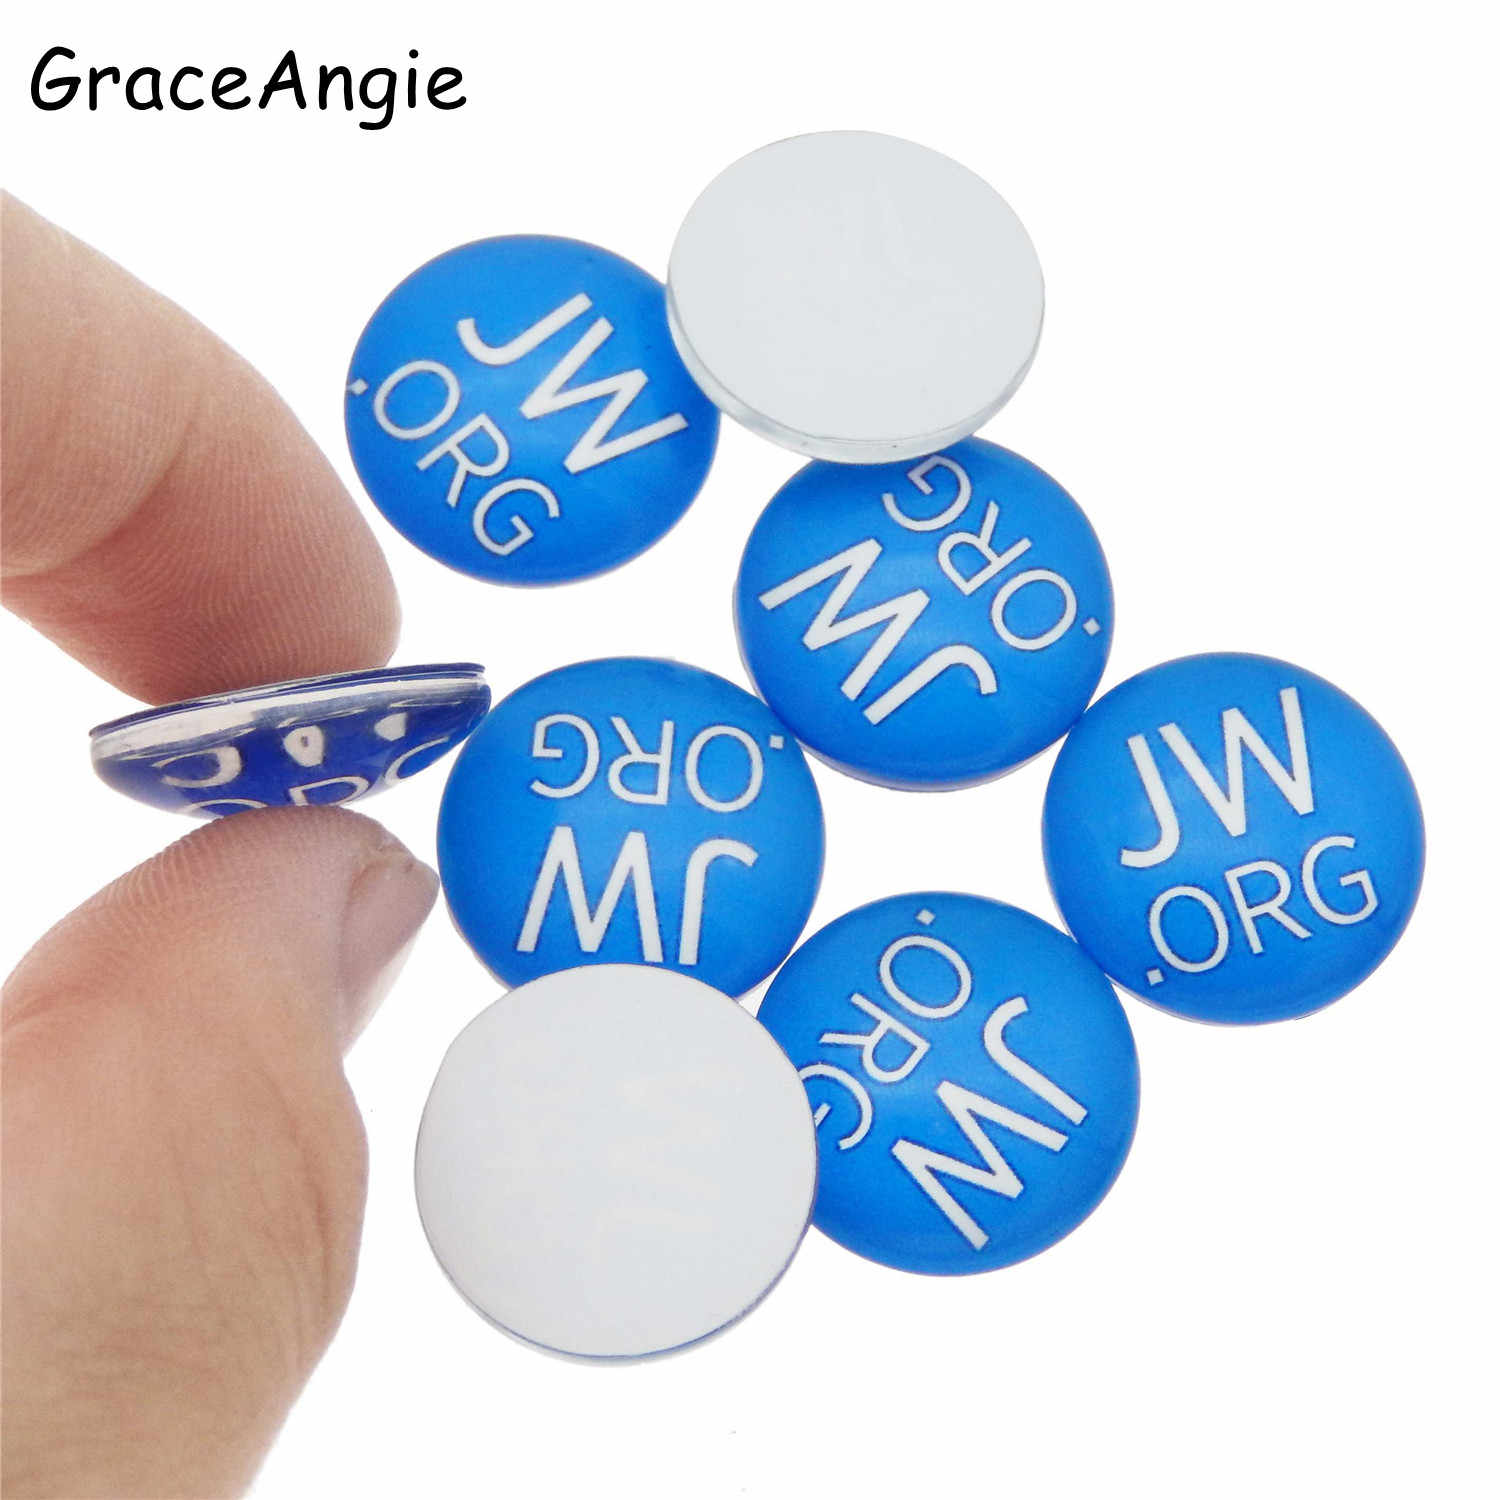 10/20/50pcs Round 10mm 18mm 25mm Glass Cabochon Charms Accessory JW org  jehovah's witnesses  glass cabochon Blue Cameo Crafts